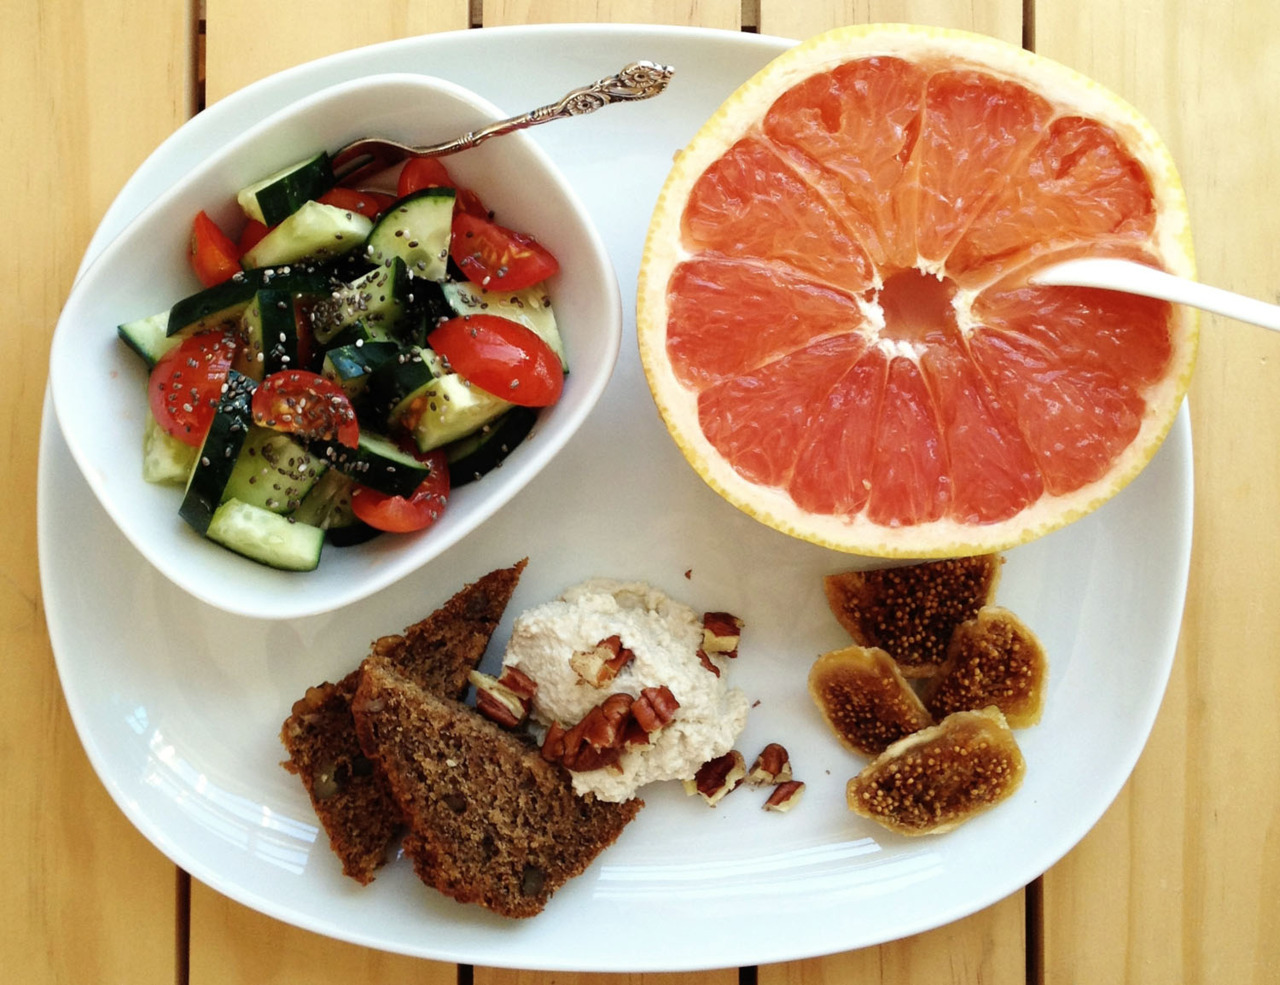 Breakfast this morning: banana bread w/ cashew cream, tomato-cucumber salad. Nice start to a day that will be full of sewing and pixel-pushing.